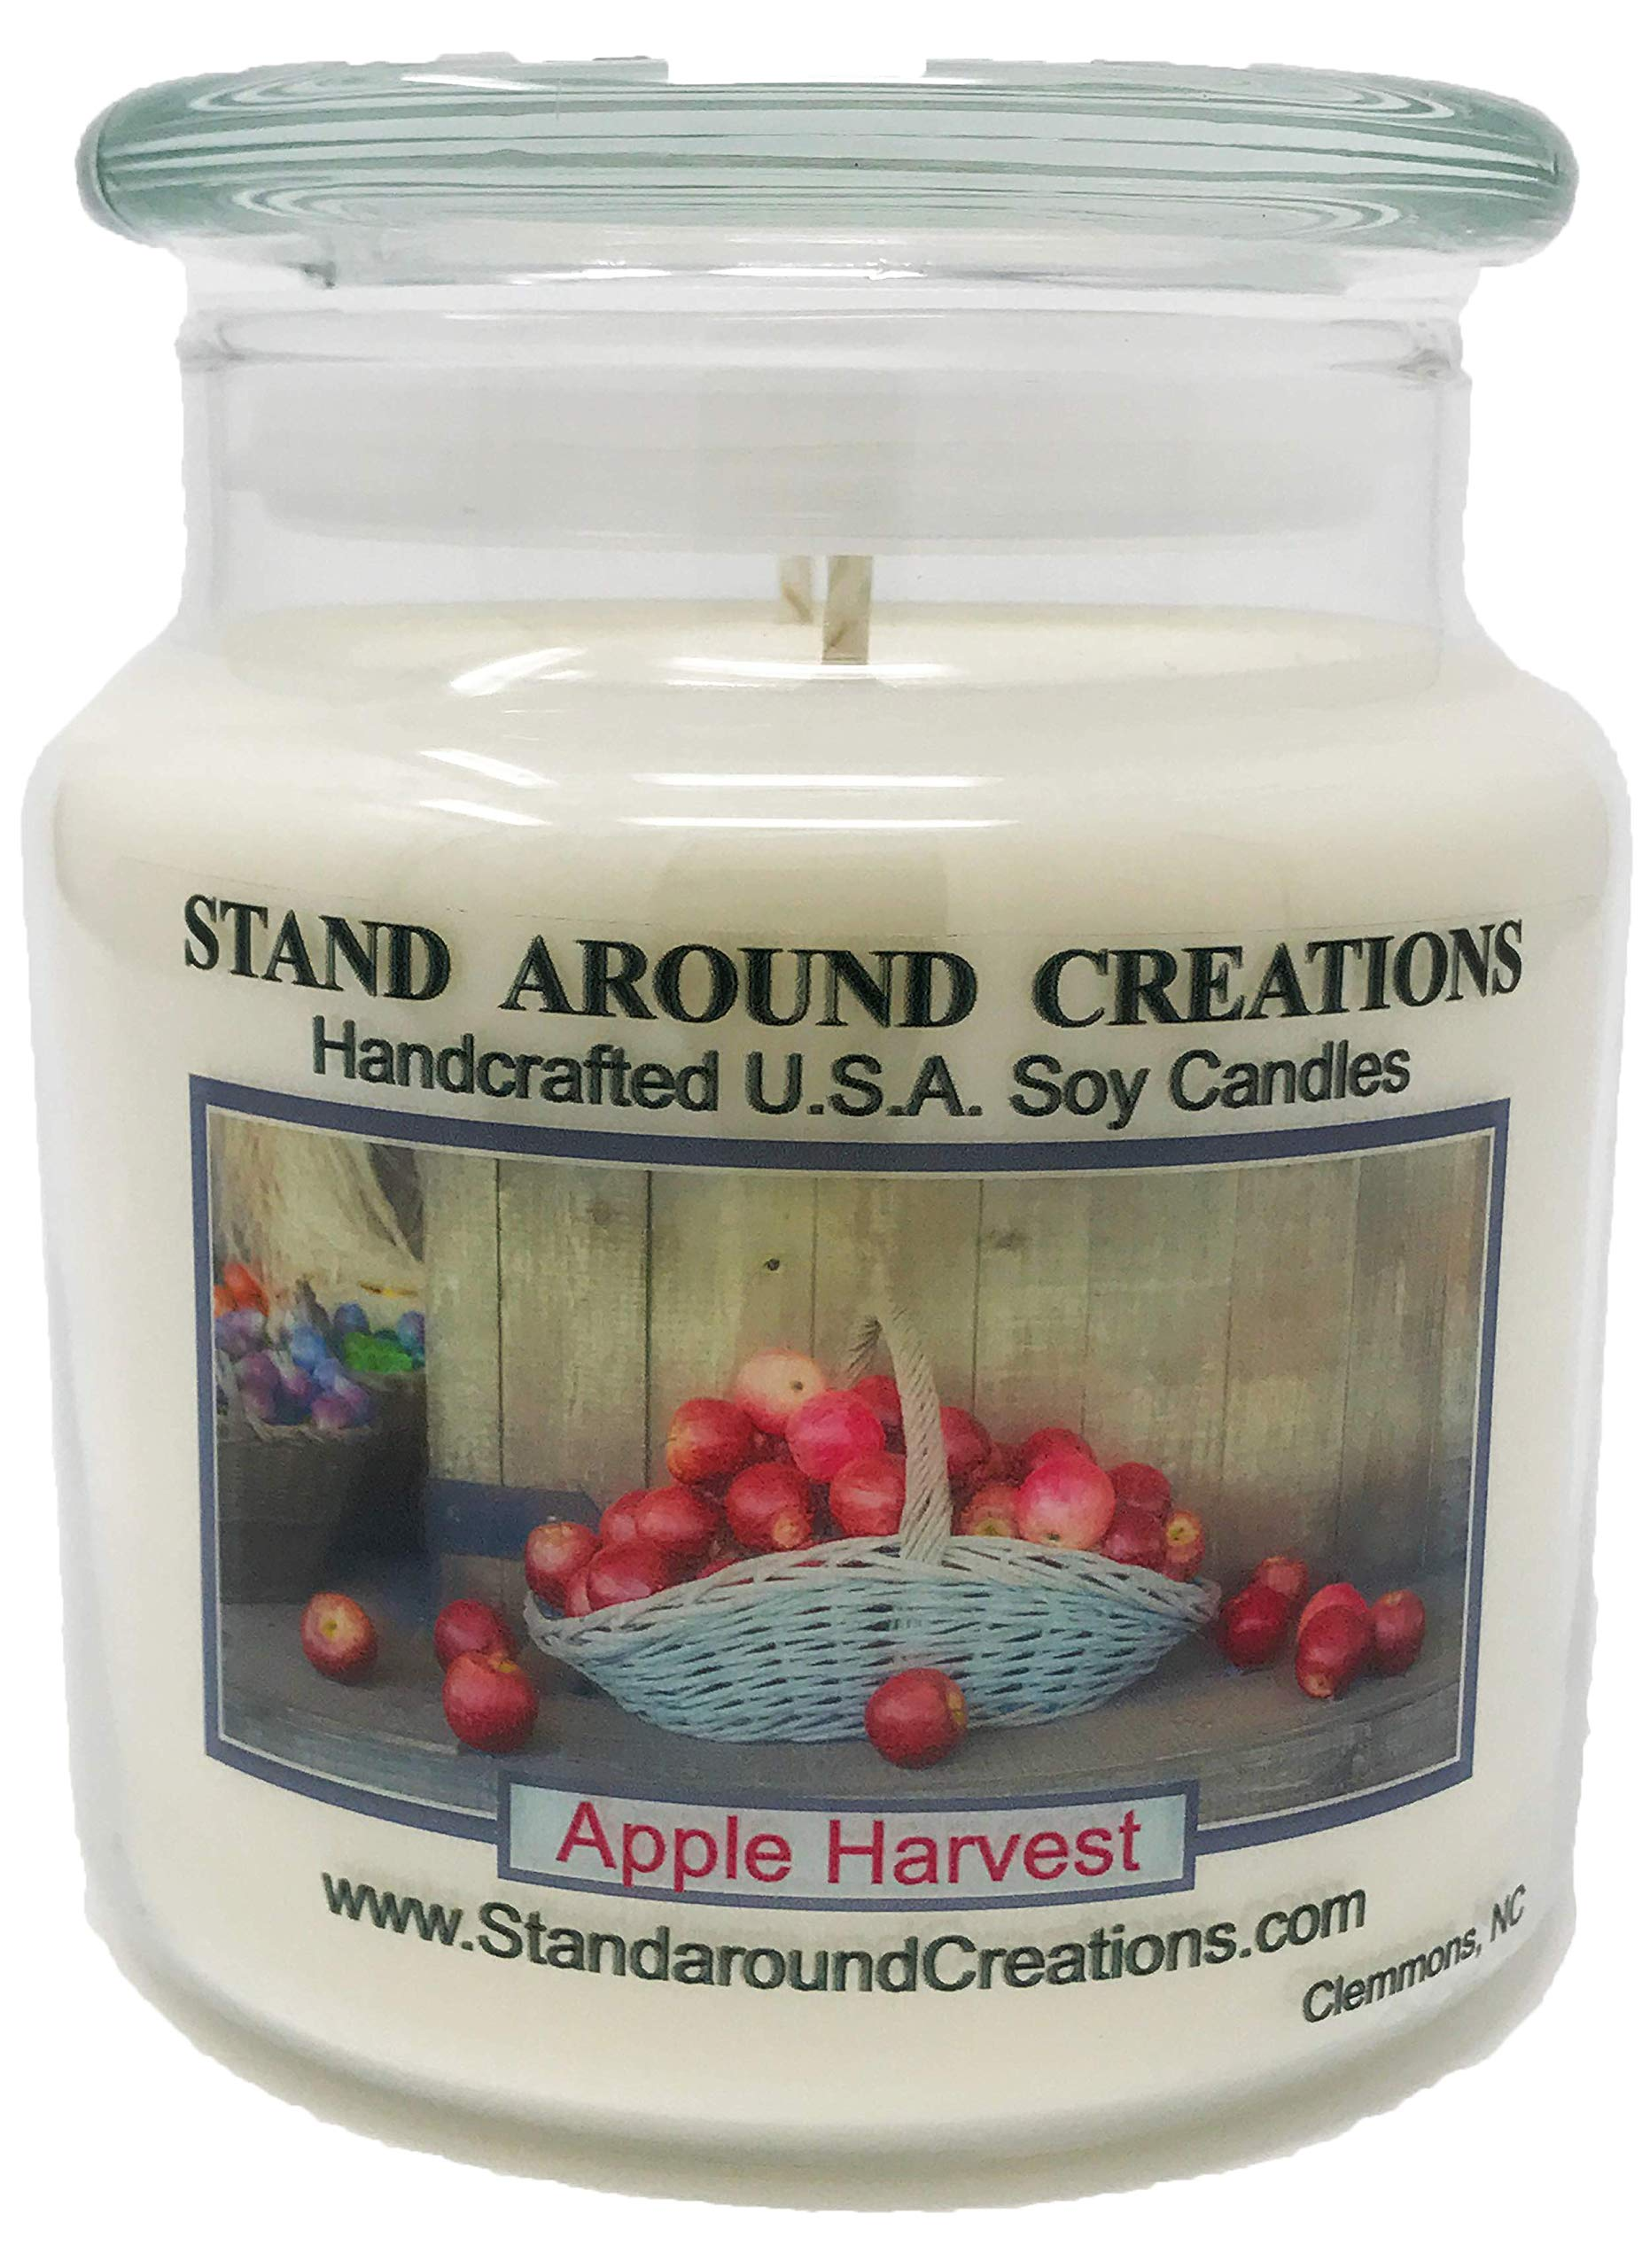 Premium 100% Soy Apothecary Candle - 16 oz Double Wicked - Apple Harvest: A ripe apple fragrance w/ just a touch of spice. Made w/ natural oils - cinnamon, nutmeg, clove, orange.